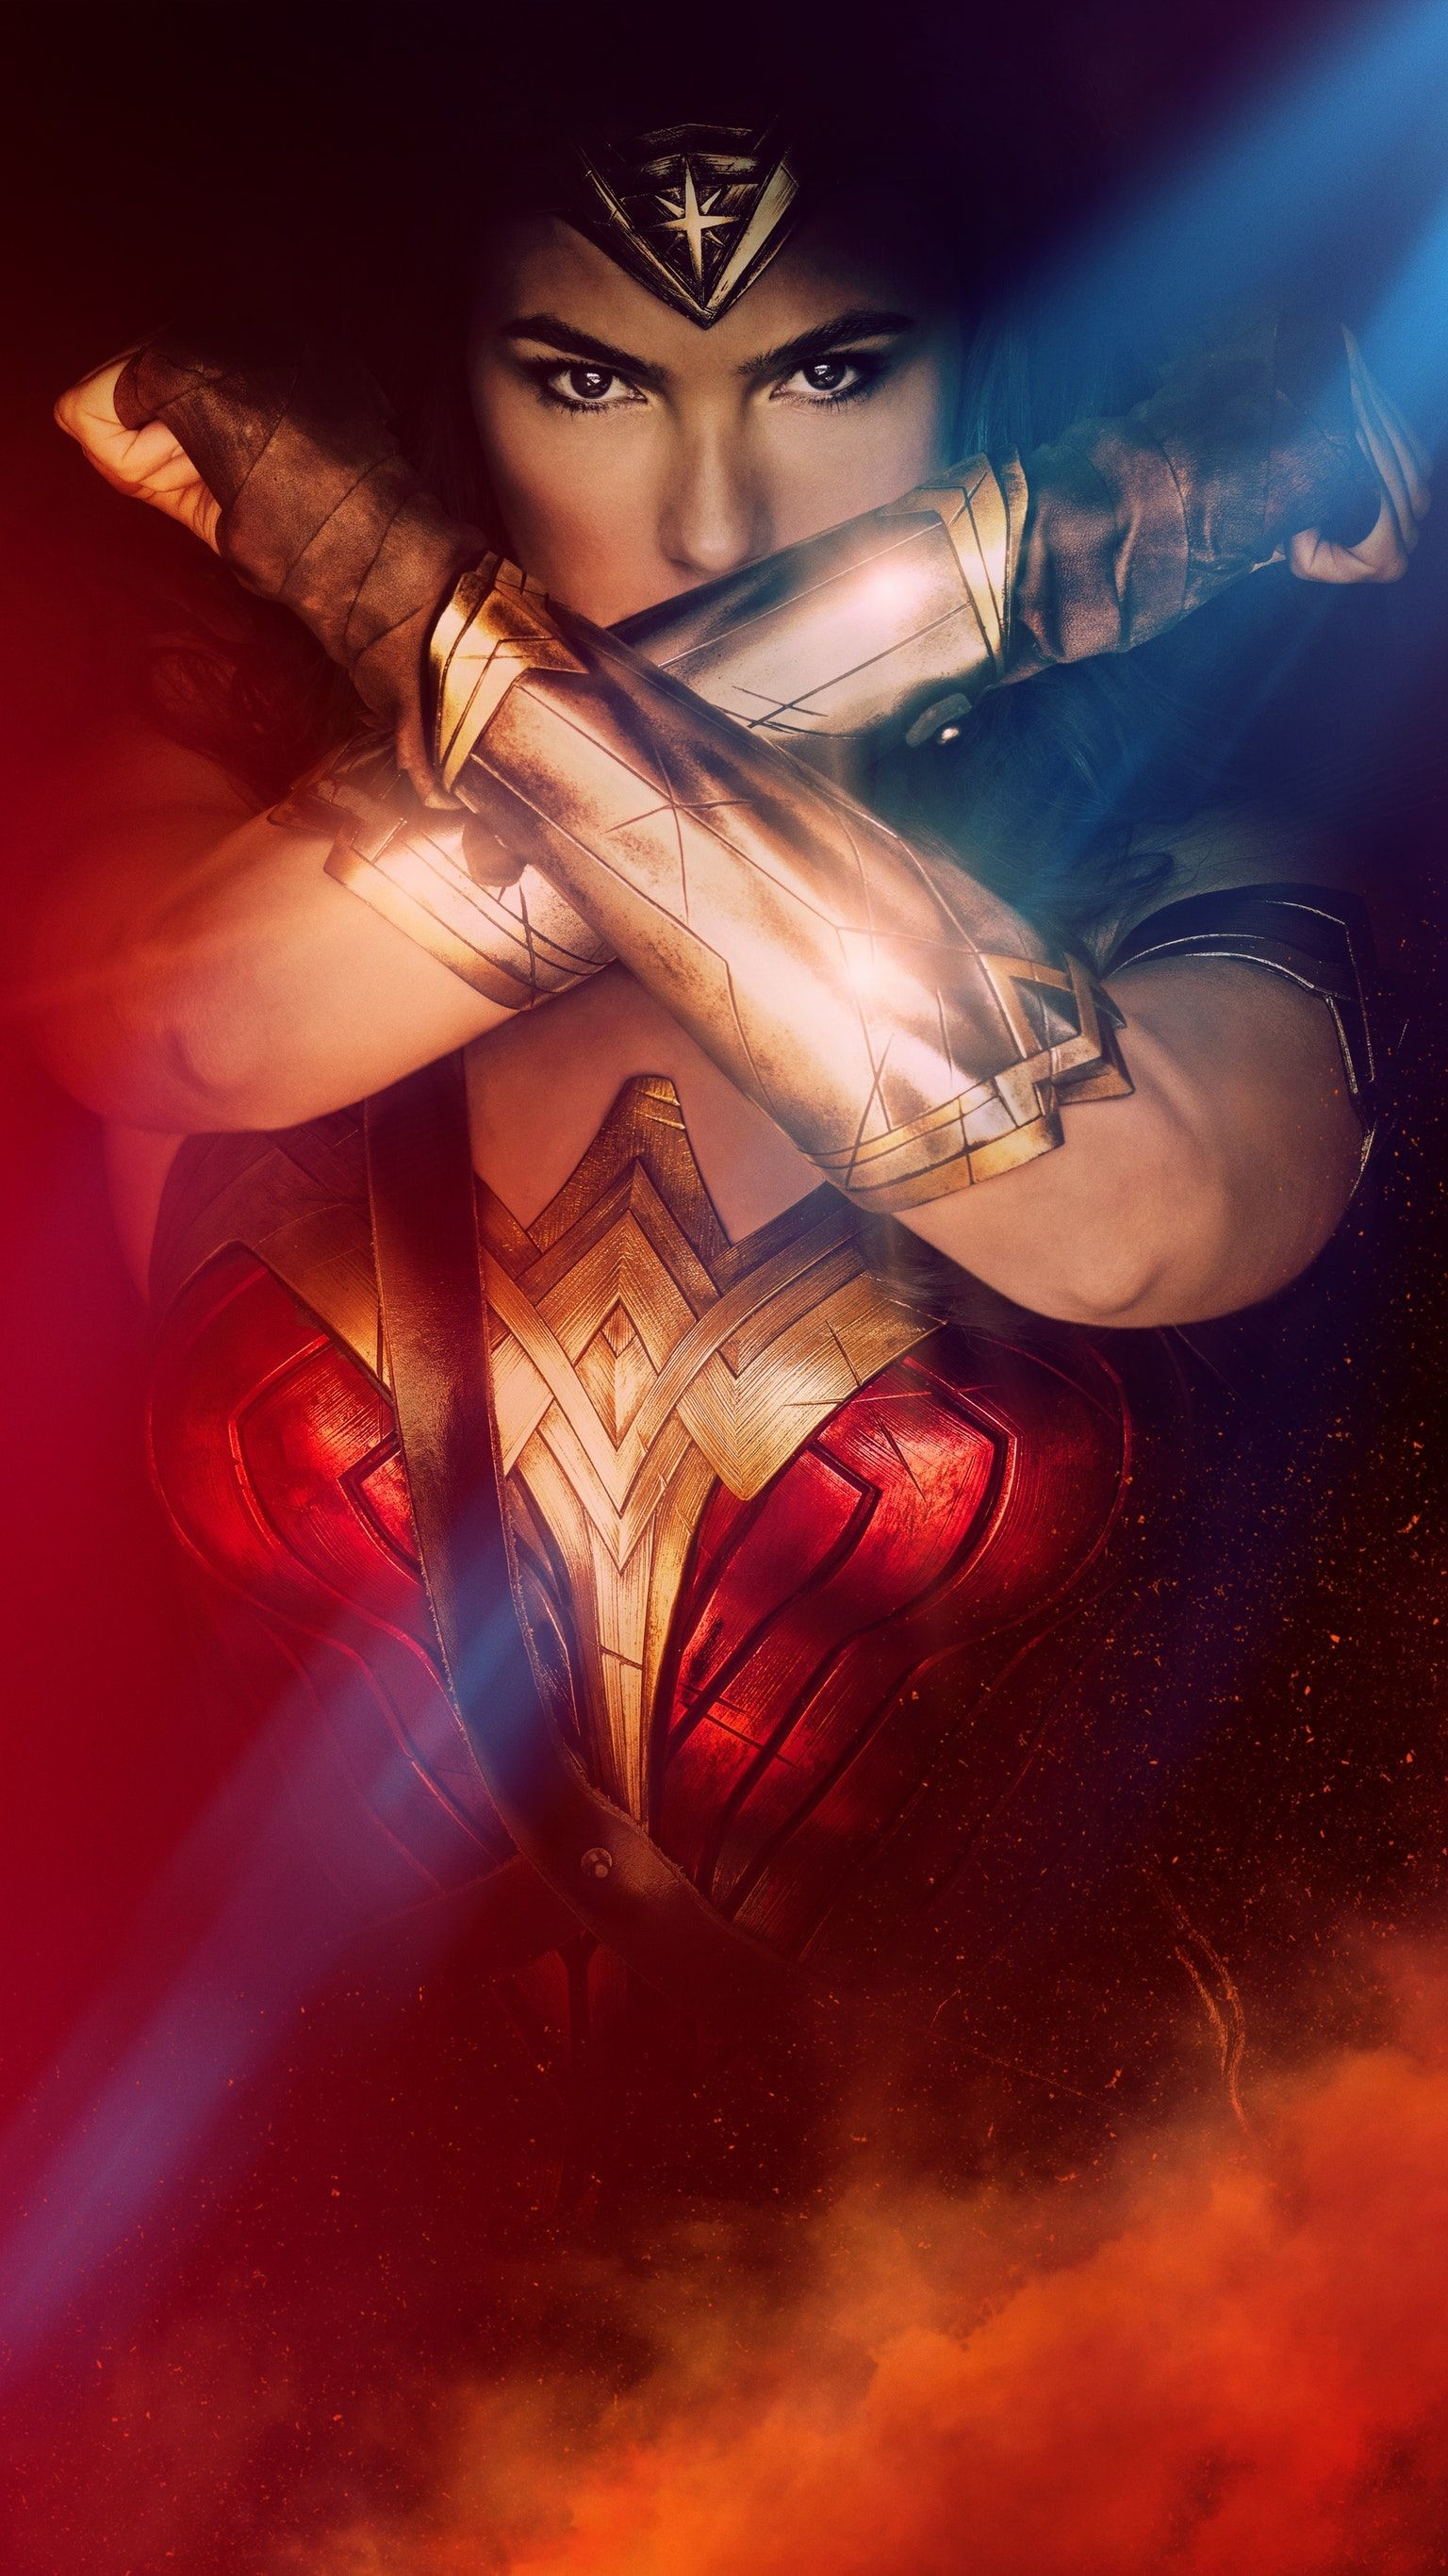 1536x2732 Wonder Woman (2017) Phone Wallpaper | Moviemania